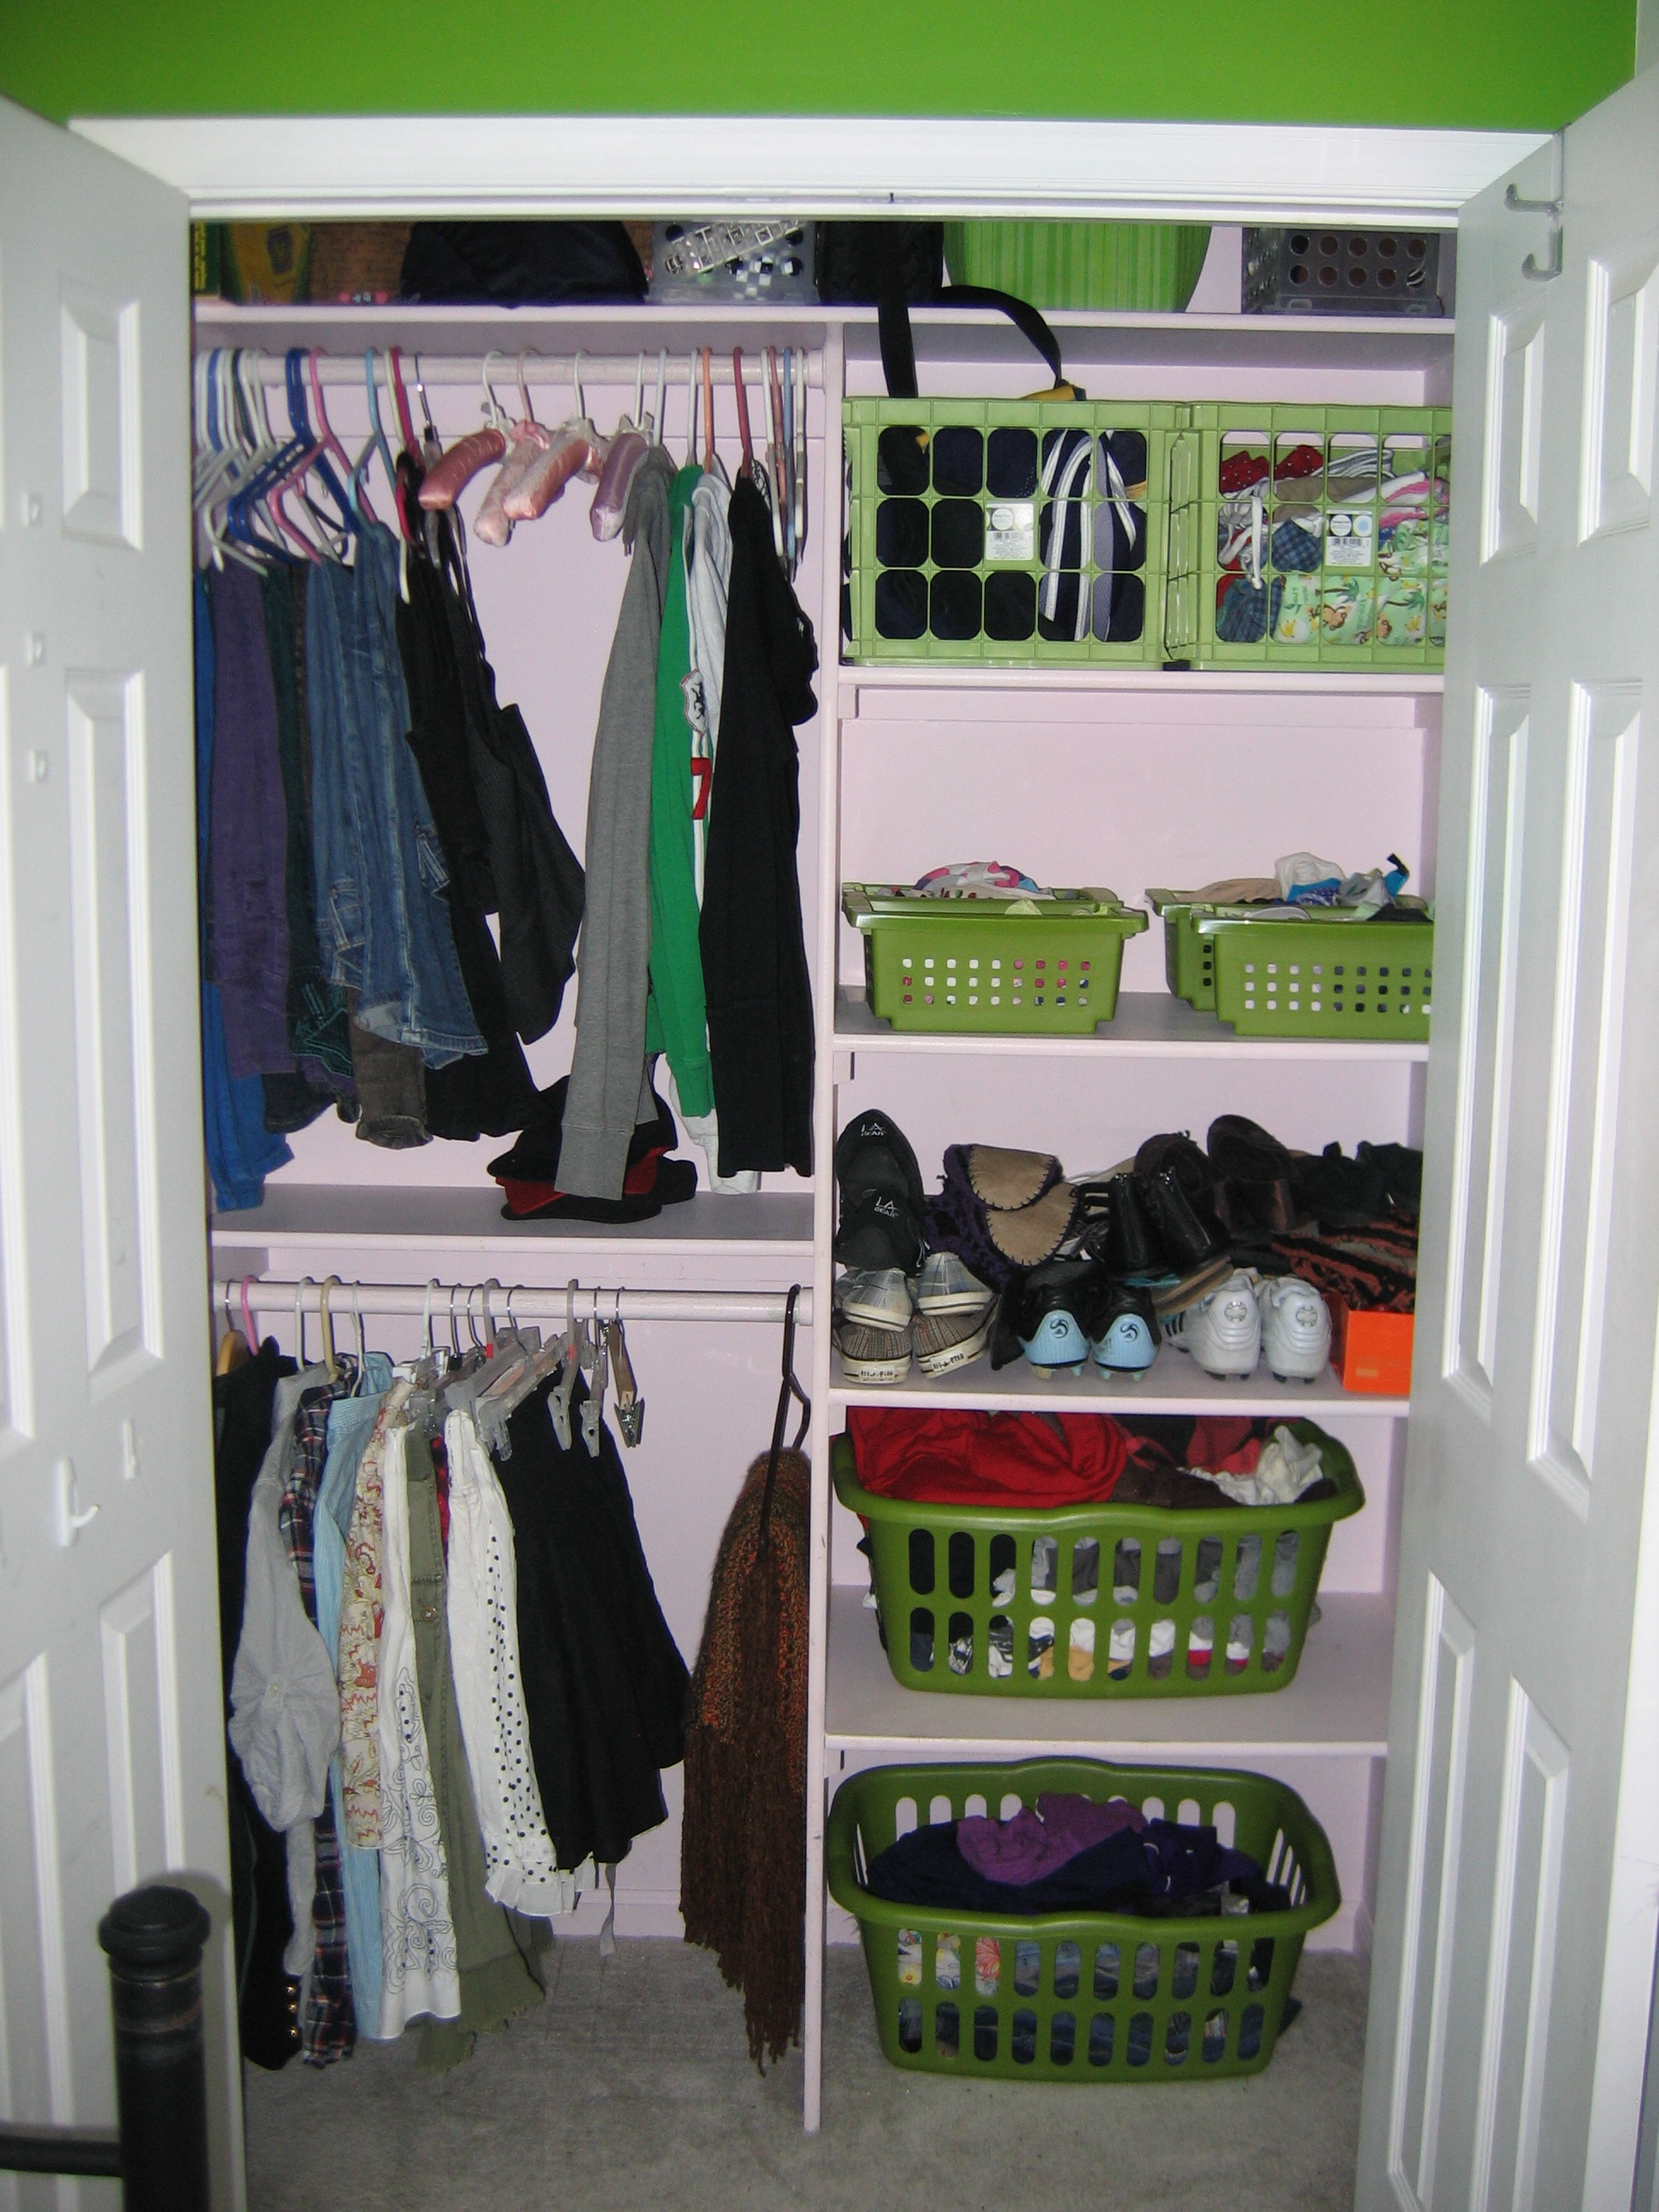 Merveilleux Small Closet Organizer Shoes Clothes